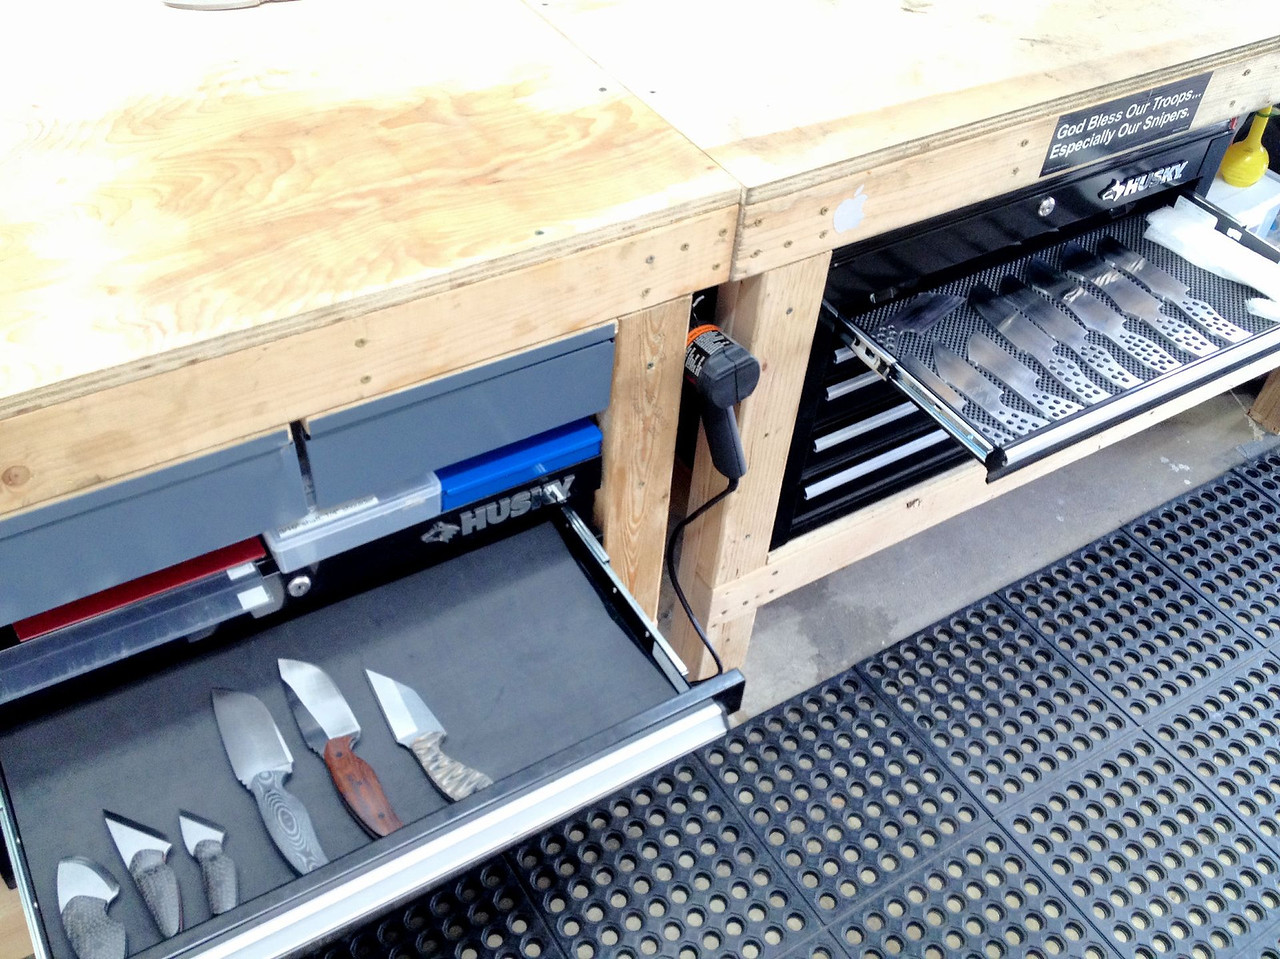 The added drawer space allows me to separate batches based on their progress.  The batch on the left is ready for sheaths.  The batch on the right is ready for heat treat.  You can also see the convenient placement of my heat gun between the benches.